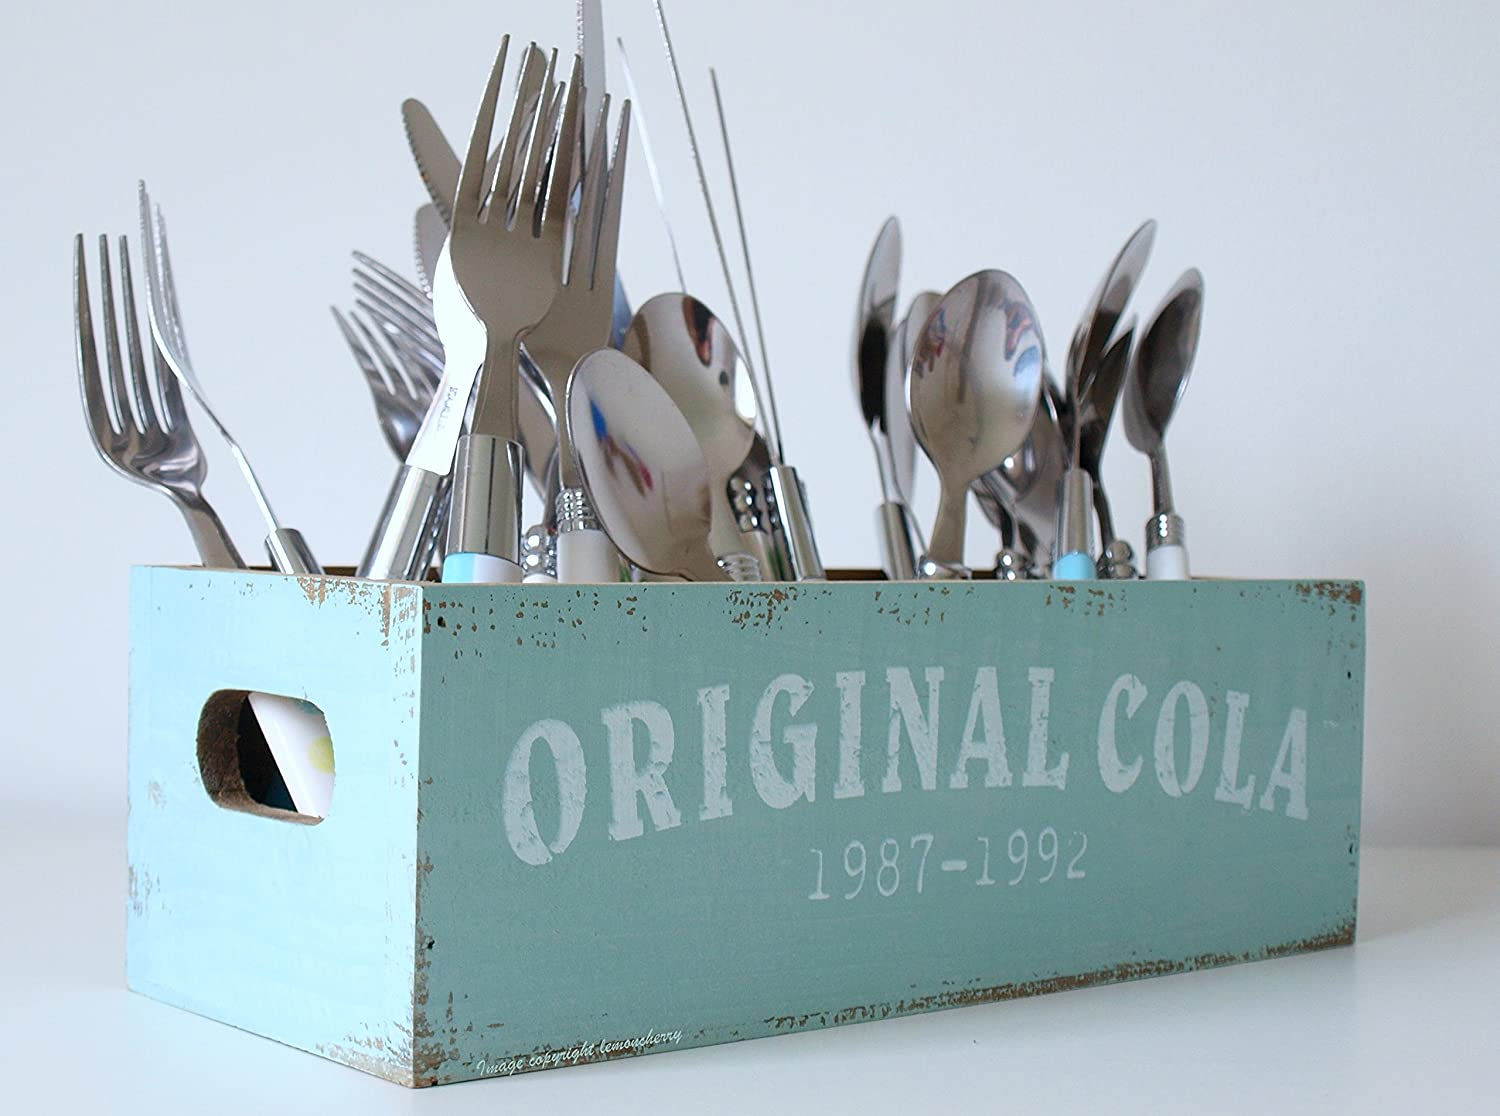 Cutlery Holder - Retro Style Pastel Blue/Turquoise Wooden Utensil ...